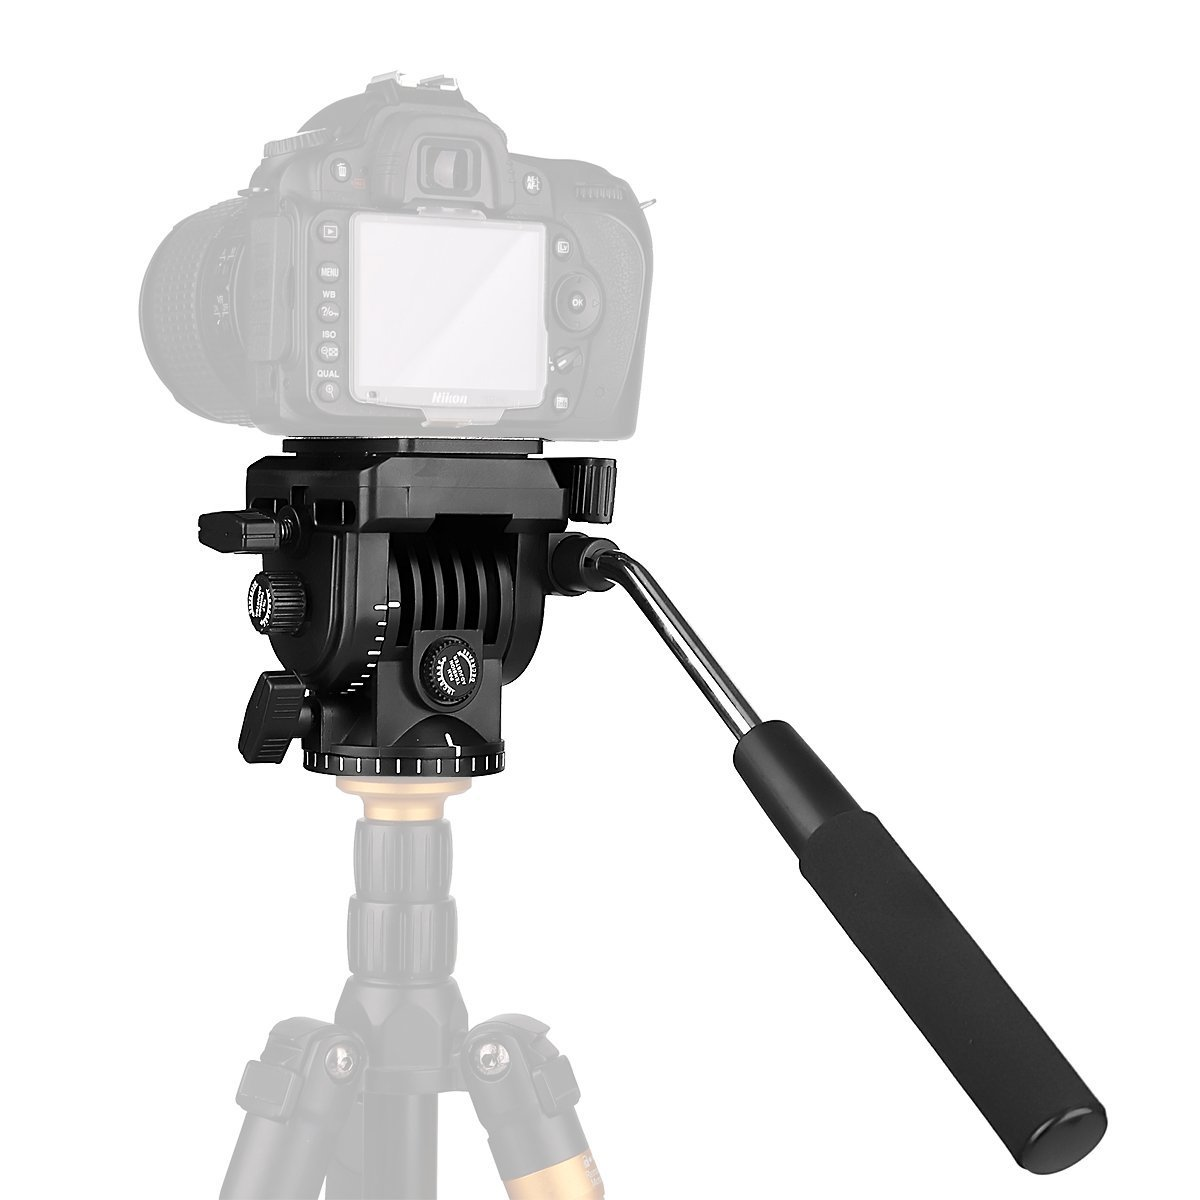 Amazon Com Pangshi Video Camera Tripod Action Fluid Drag Pan Head For Canon Nikon Sony Dslr Camera Camcorder Shooting Filming Camera Photo